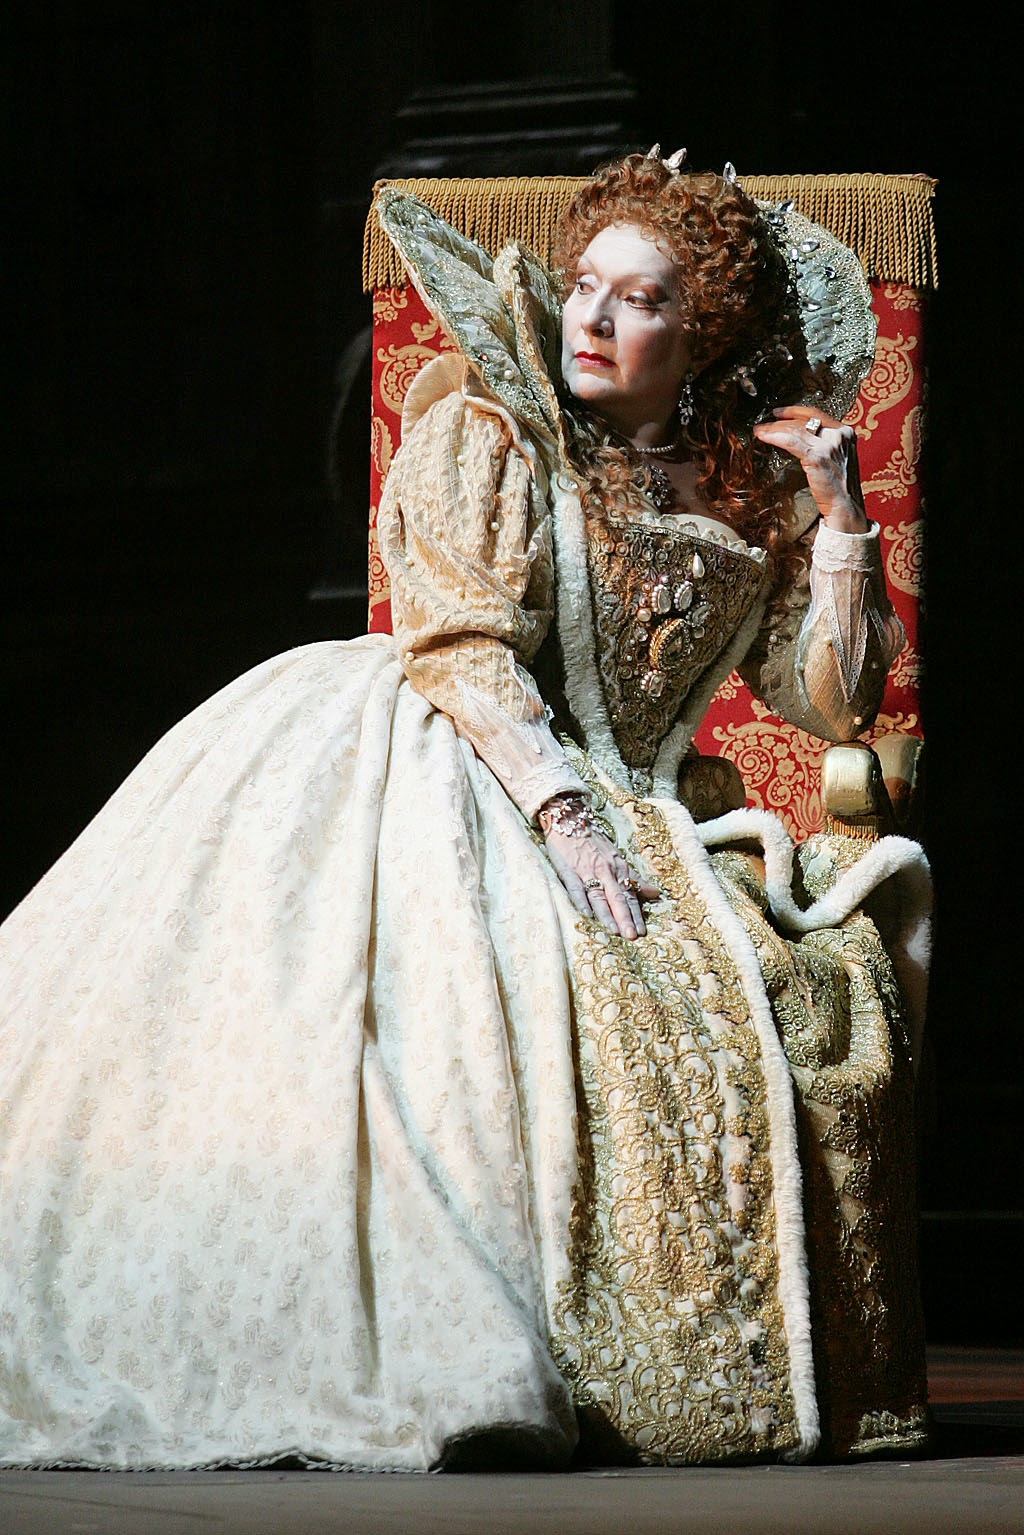 Nelly Miricioiu as Elisabetta in Roberto Devereux in Pordenone, 2008